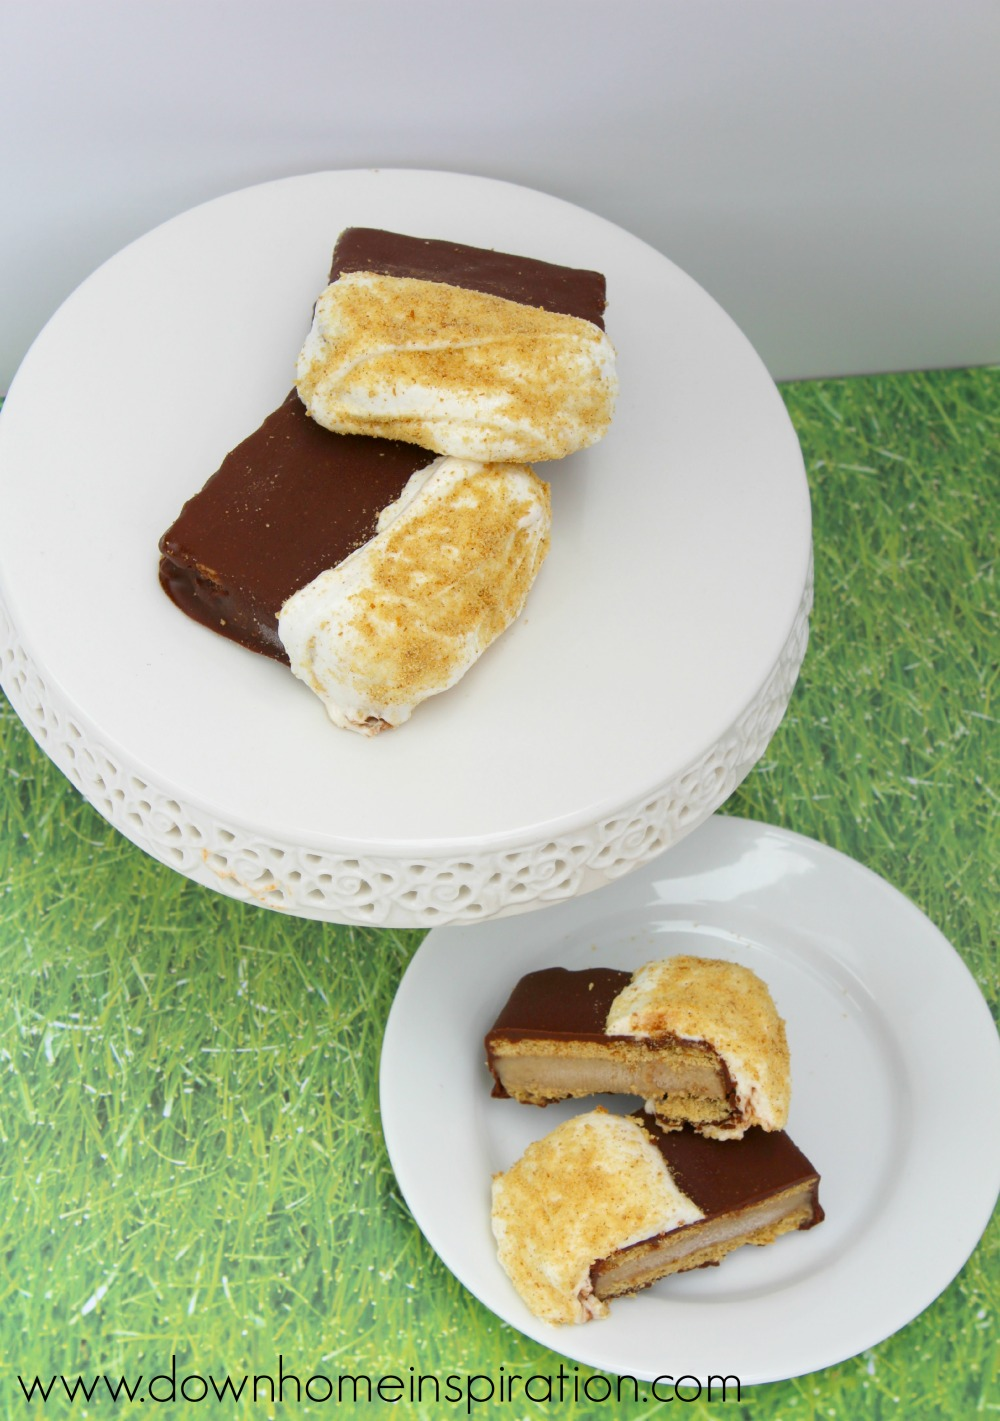 Ice Cream Sandwich with Healthy 2 Ingredient Peanut Butter Banana Ice ...